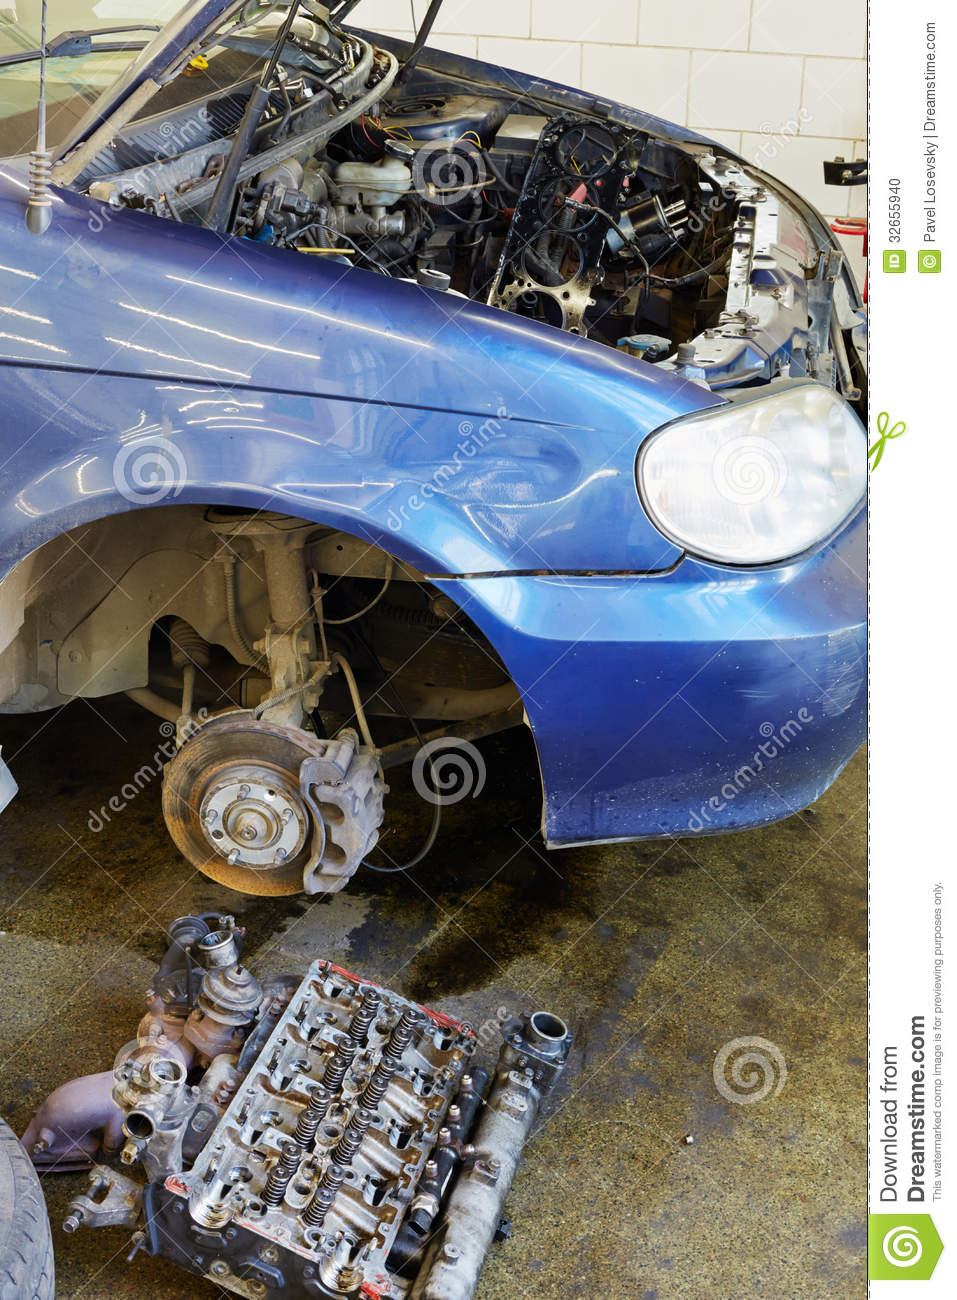 Car under repair editorial image 79994470 for Motor machine shop near me